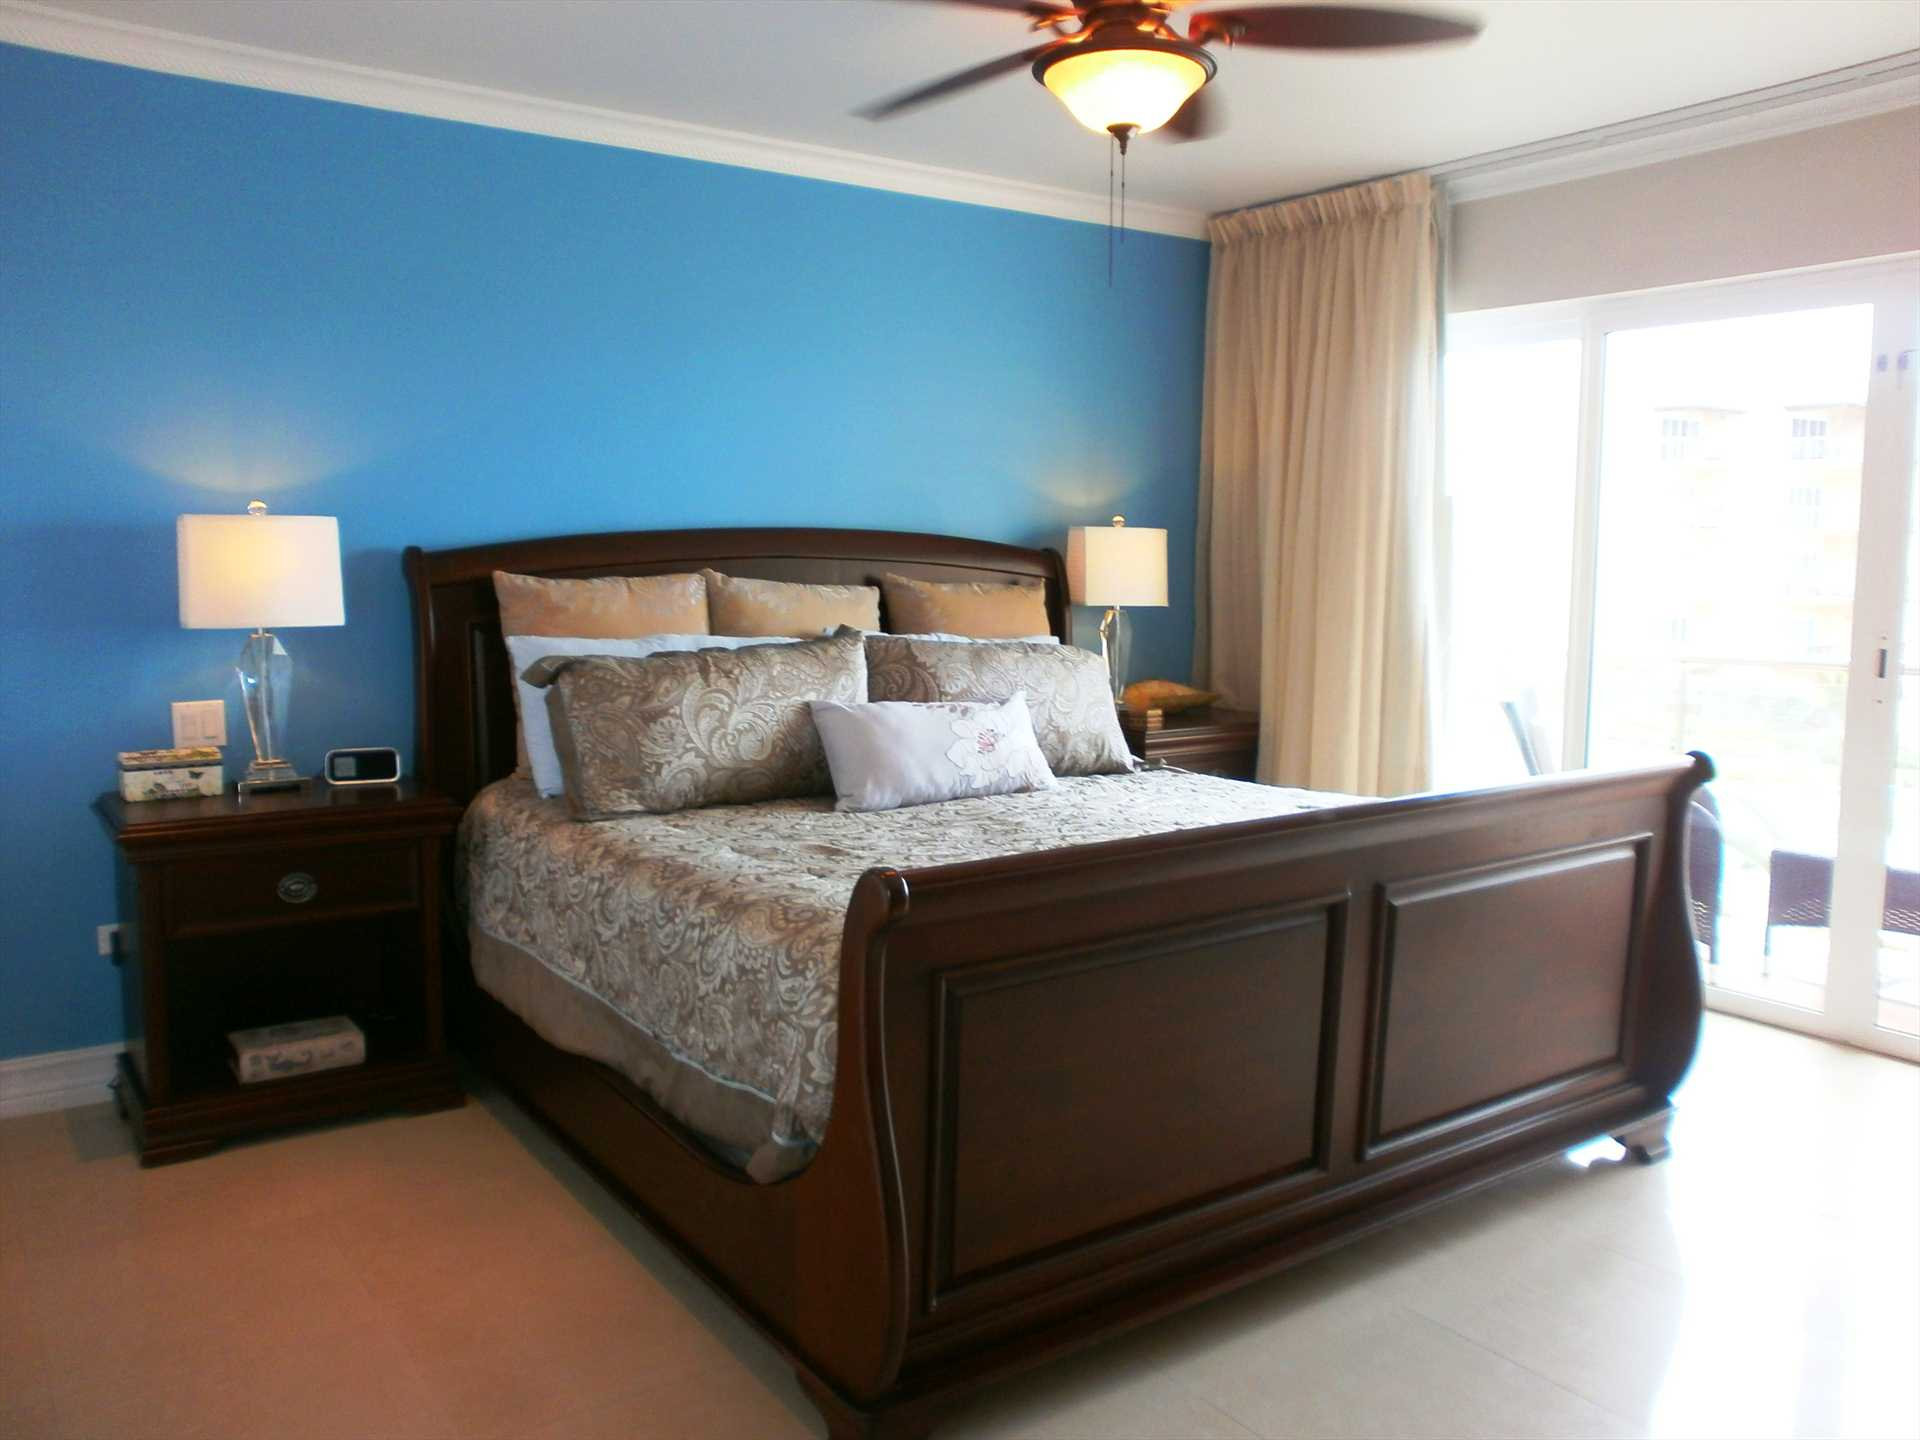 Master bedroom with comfortable king-size bed